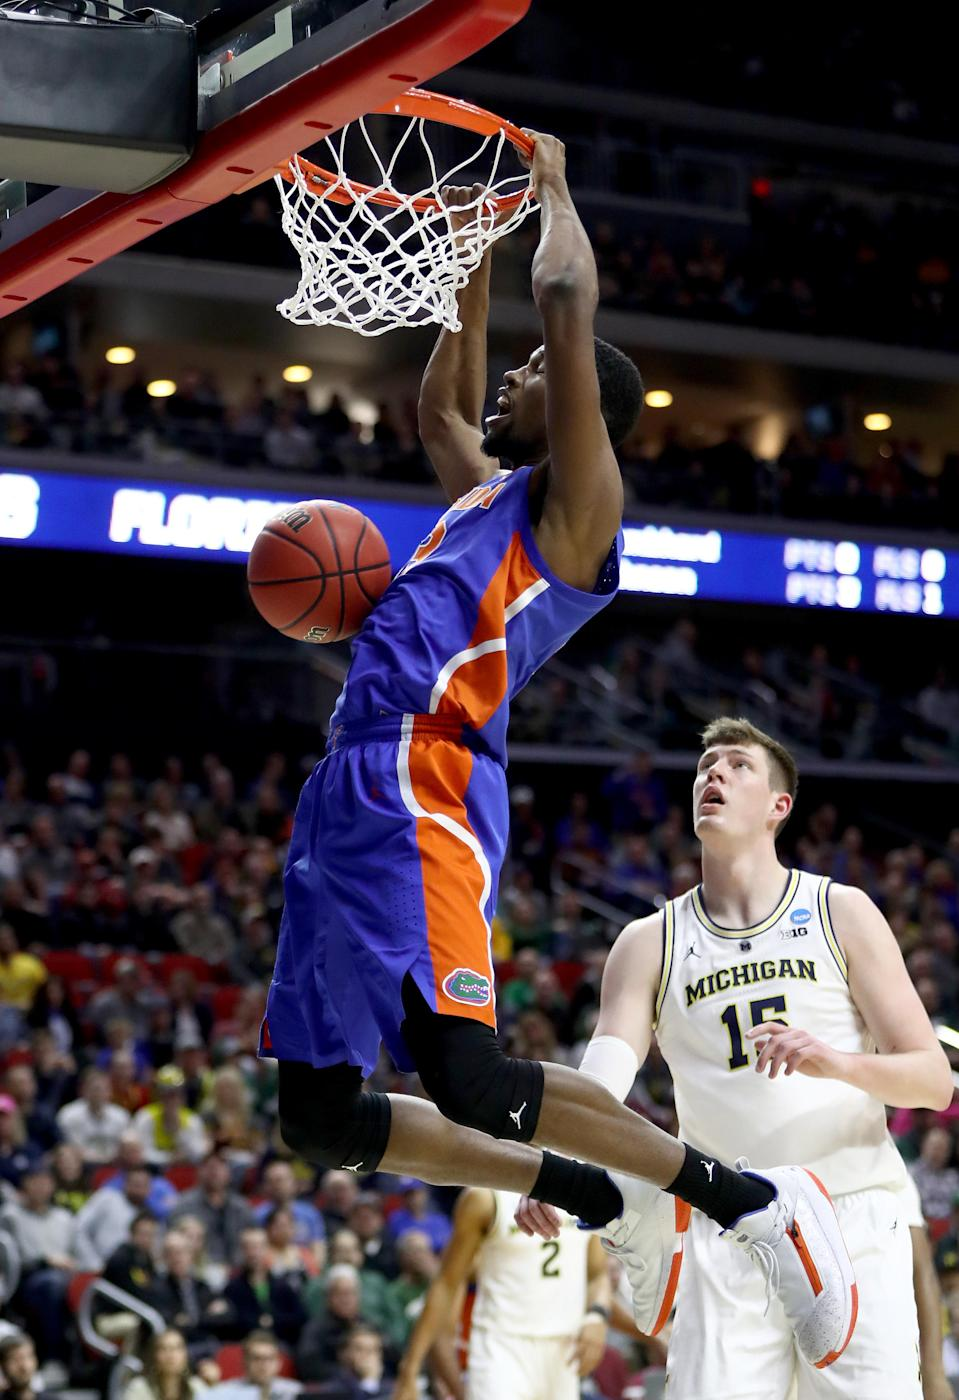 <p>Kevarrius Hayes #13 of the Florida Gators dunks the ball against Jon Teske #15 of the Michigan Wolverines during the first half in the second round game of the 2019 NCAA Men's Basketball Tournament at Wells Fargo Arena on March 23, 2019 in Des Moines, Iowa. (Photo by Jamie Squire/Getty Images) </p>